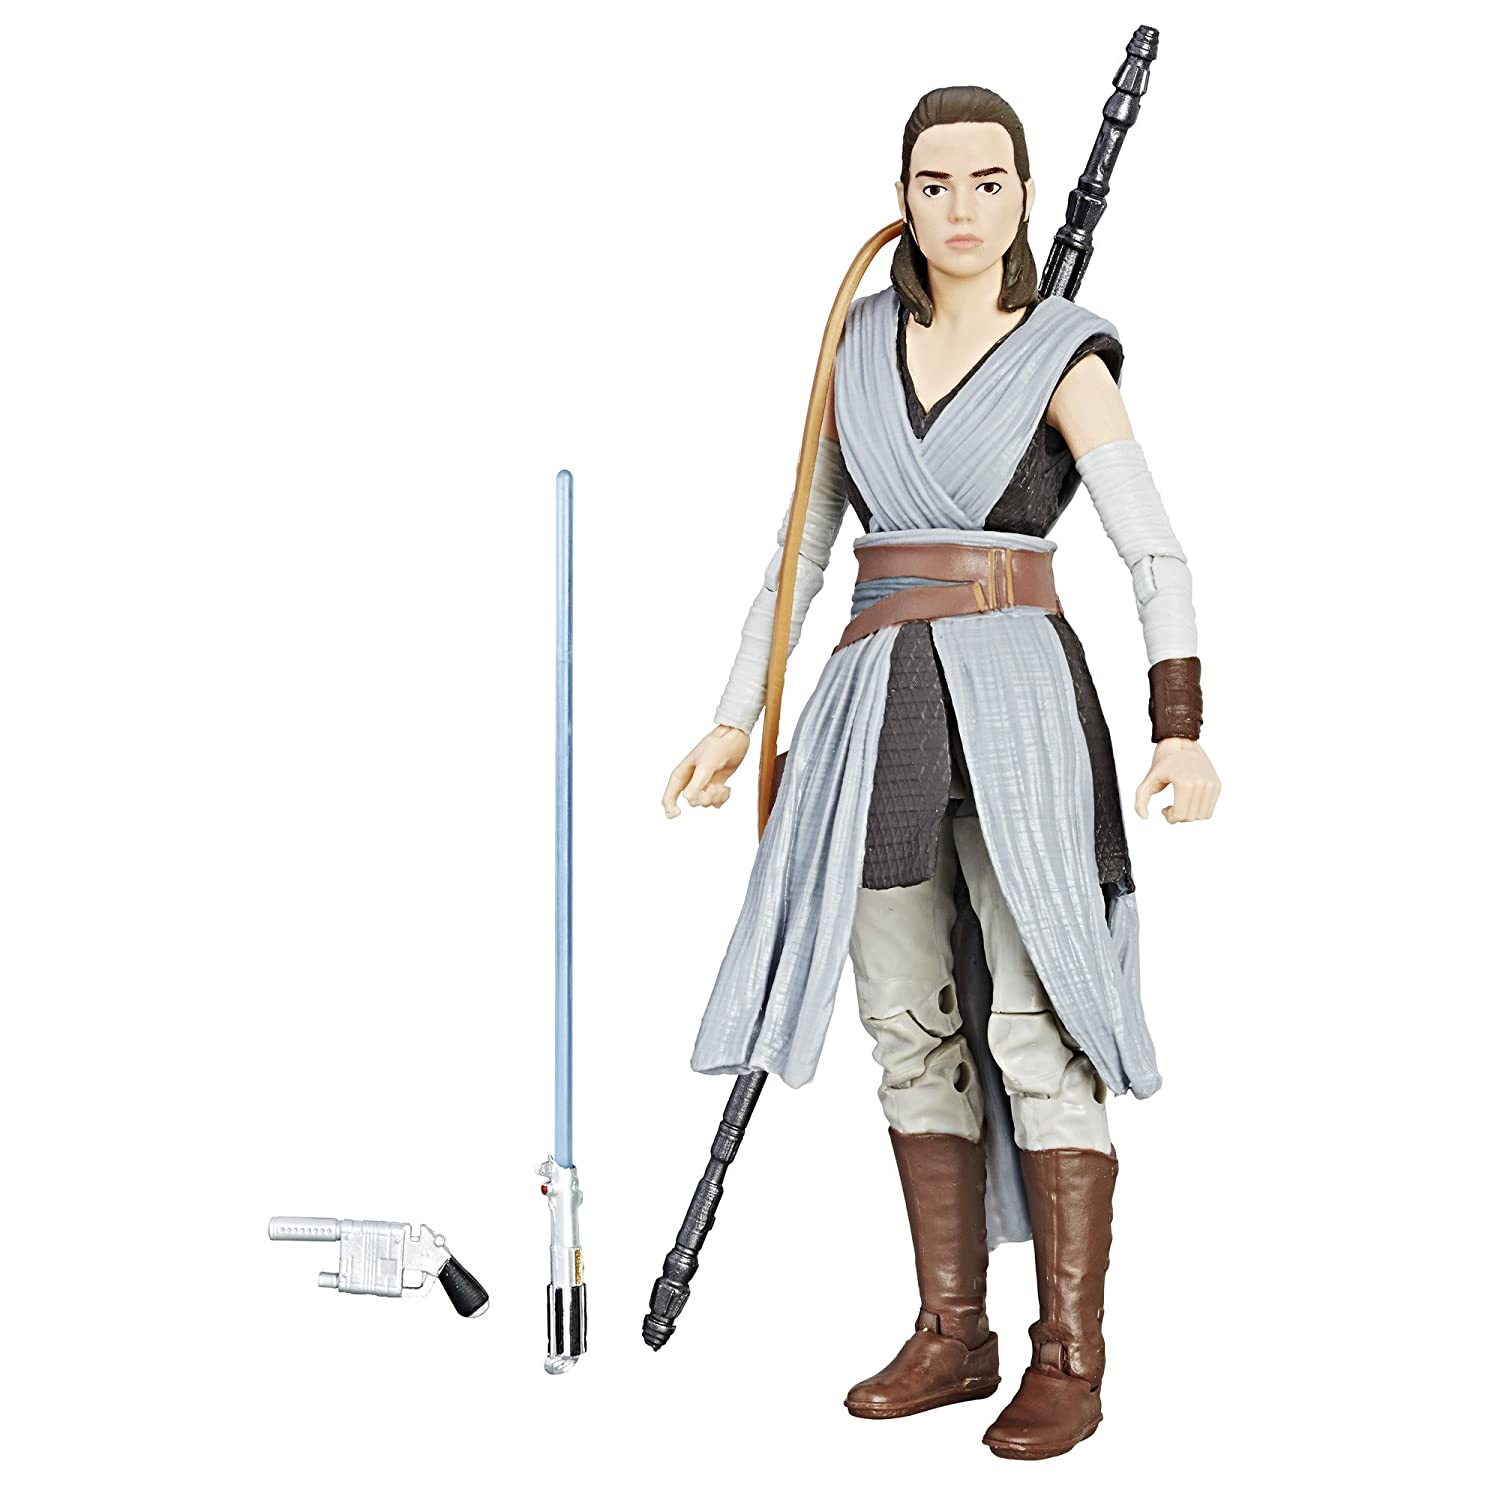 Star Wars The Black Episode 8 Series Rey (Jedi Training), 6-inch